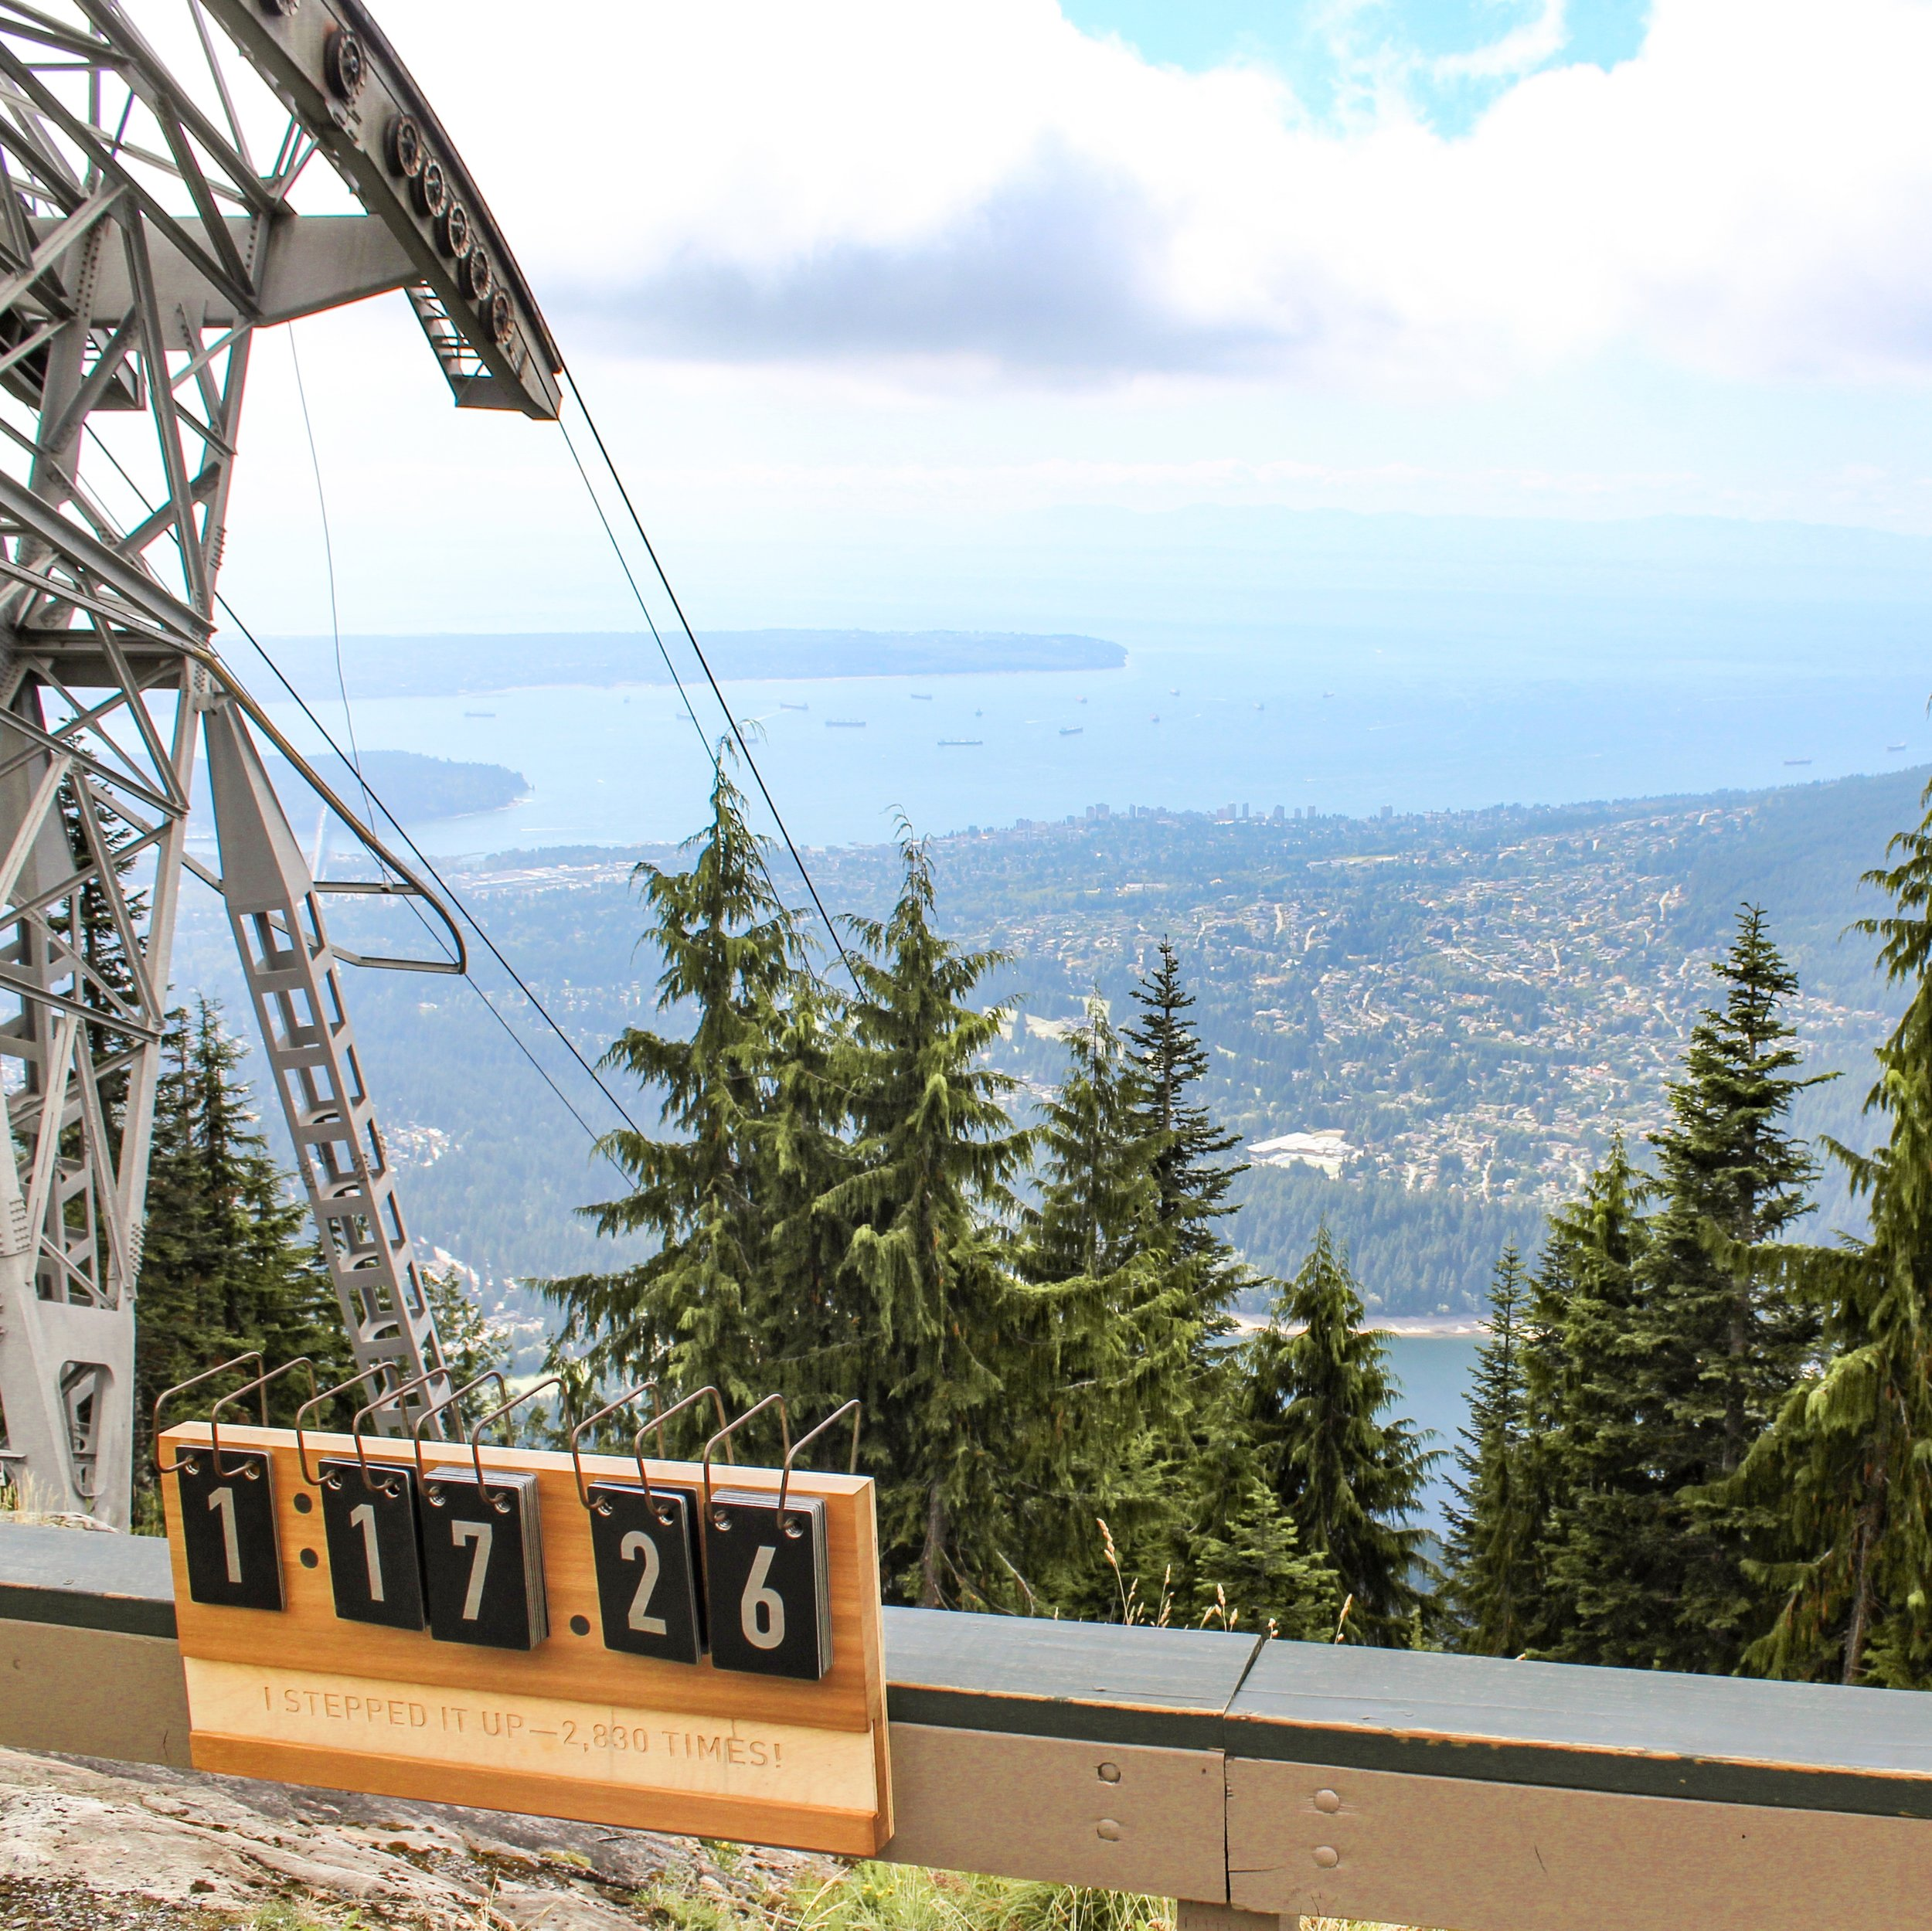 Panoramic views of Vancouver city from the Grouse Mountain summit